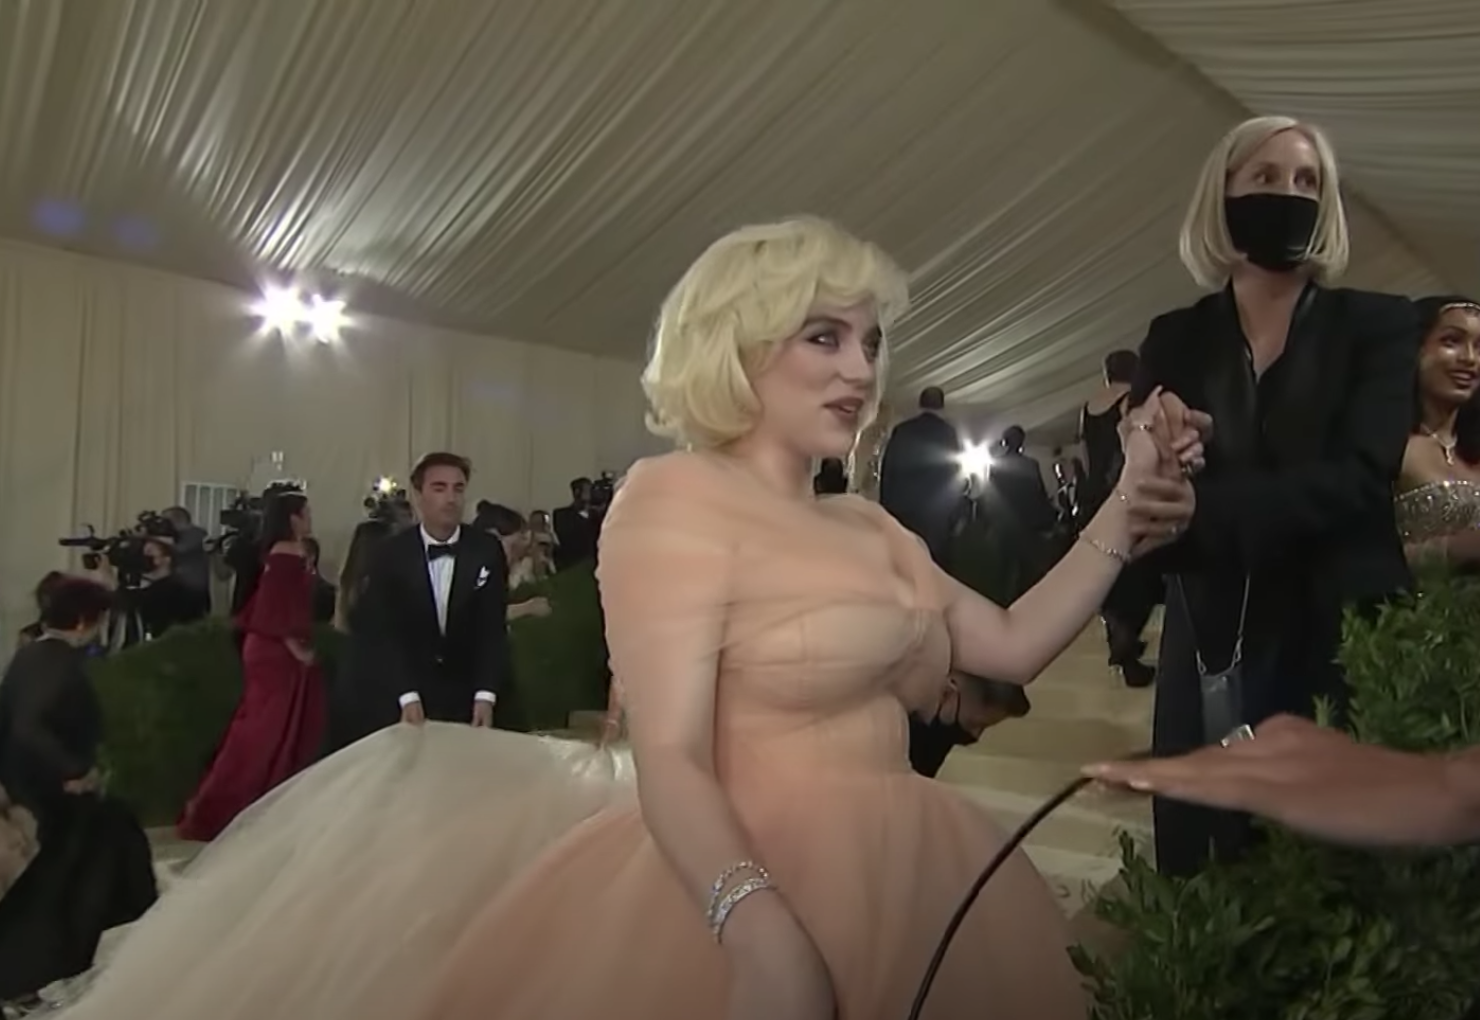 10 Looks from the 2021 Met Gala That Made Our Jaws Drop